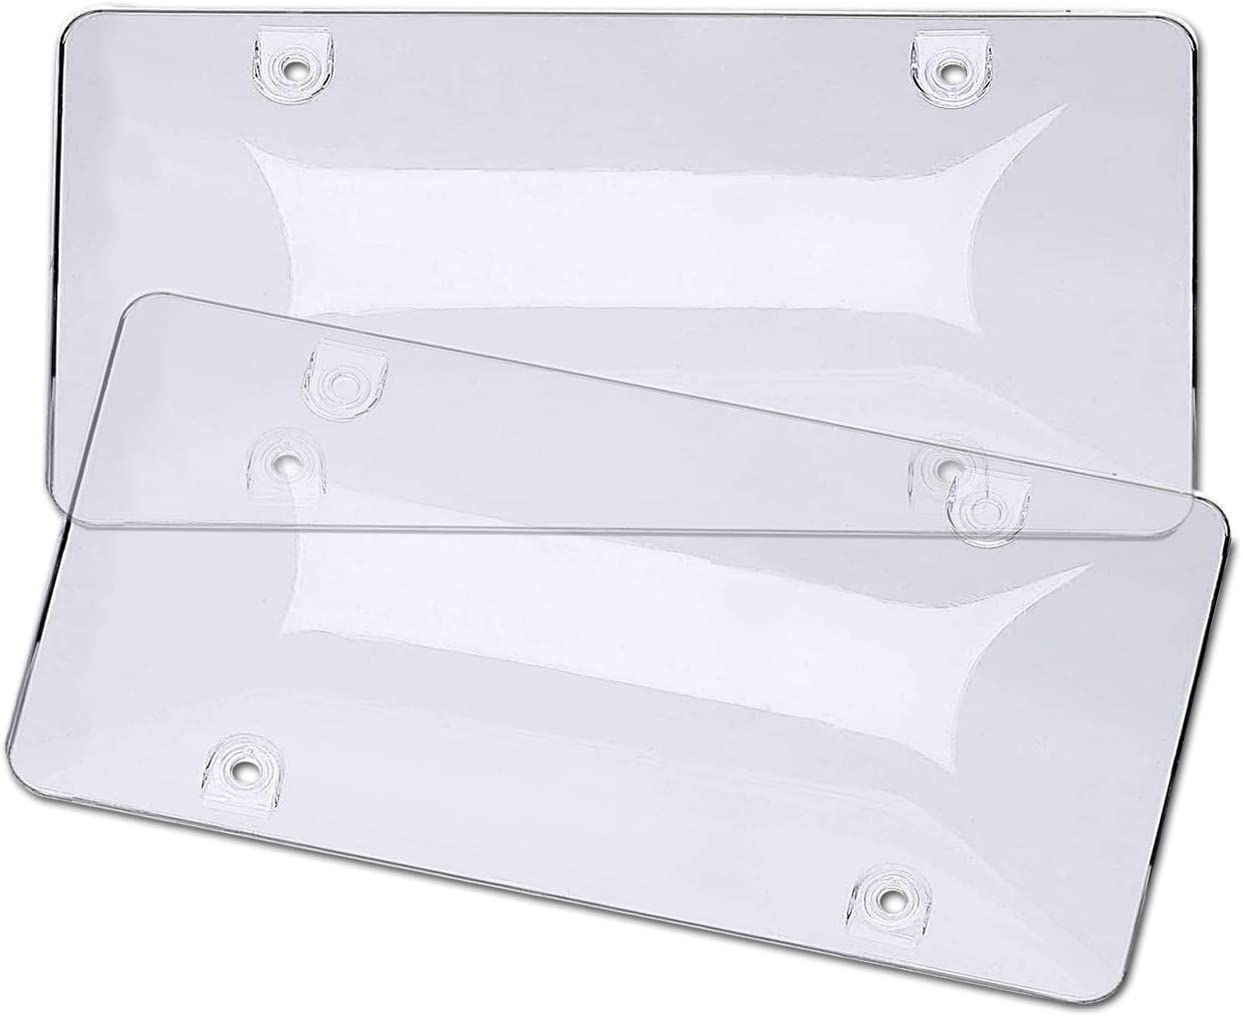 1PC LICENSE PLATE FRAME AND CLEAR ACRYLIC TOUGH SHIELD PROTECTOR COVER S6